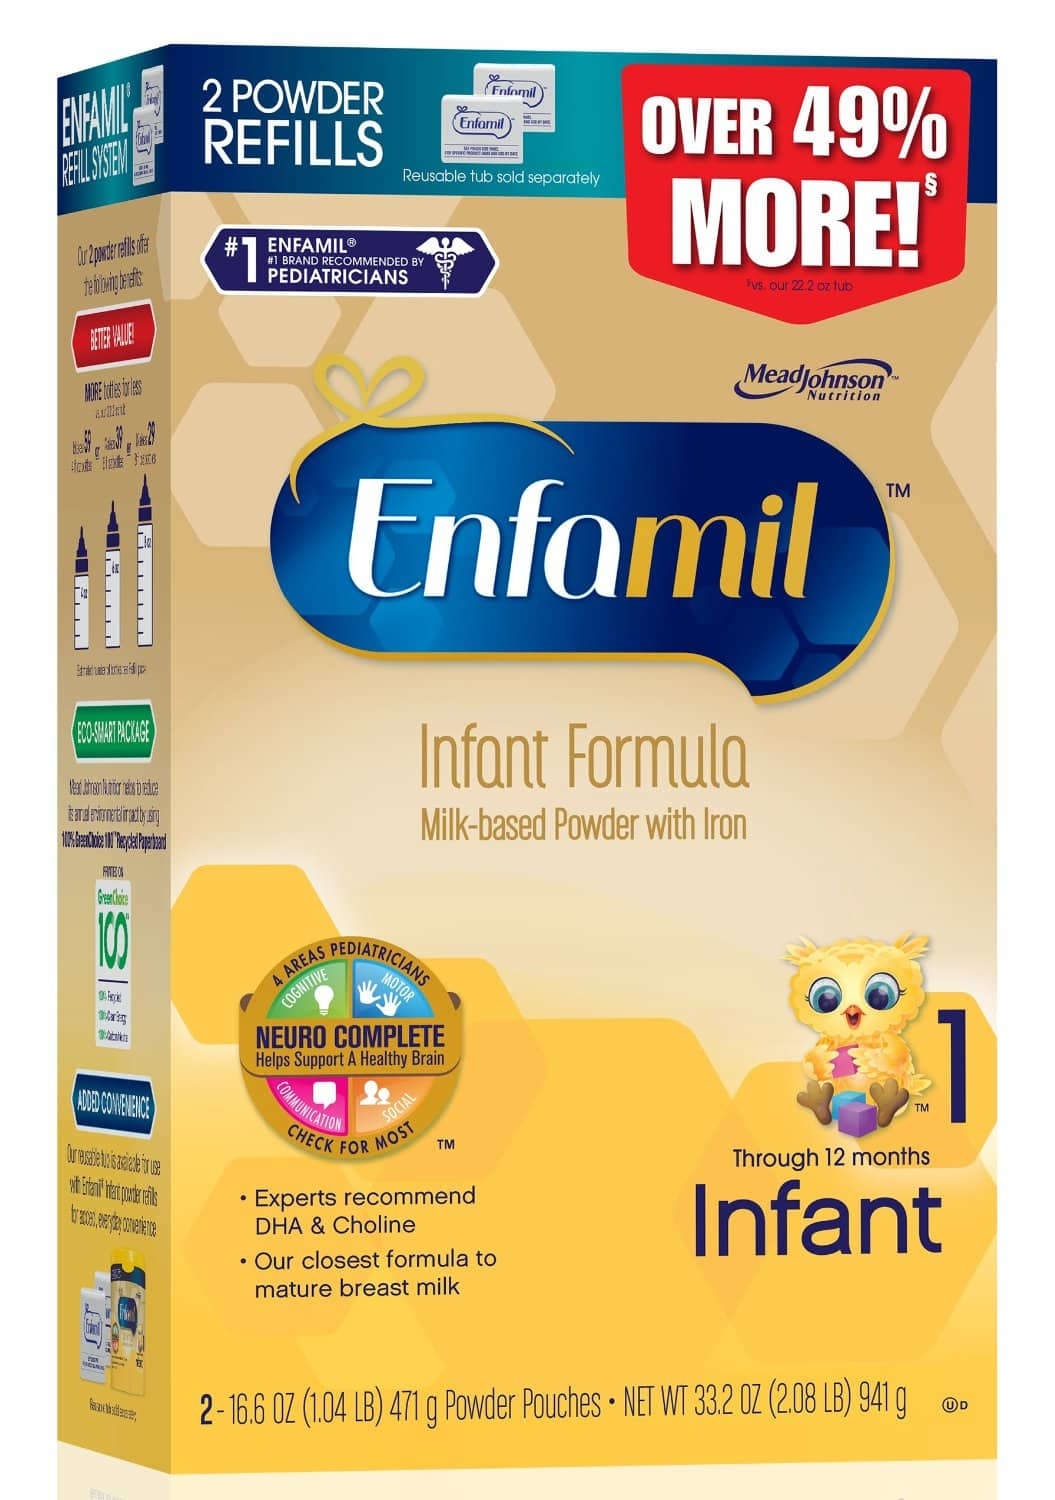 Enfamil Infant Baby Formula - 33.2 oz Refill Box for $25.98 + Prime Free Shipping